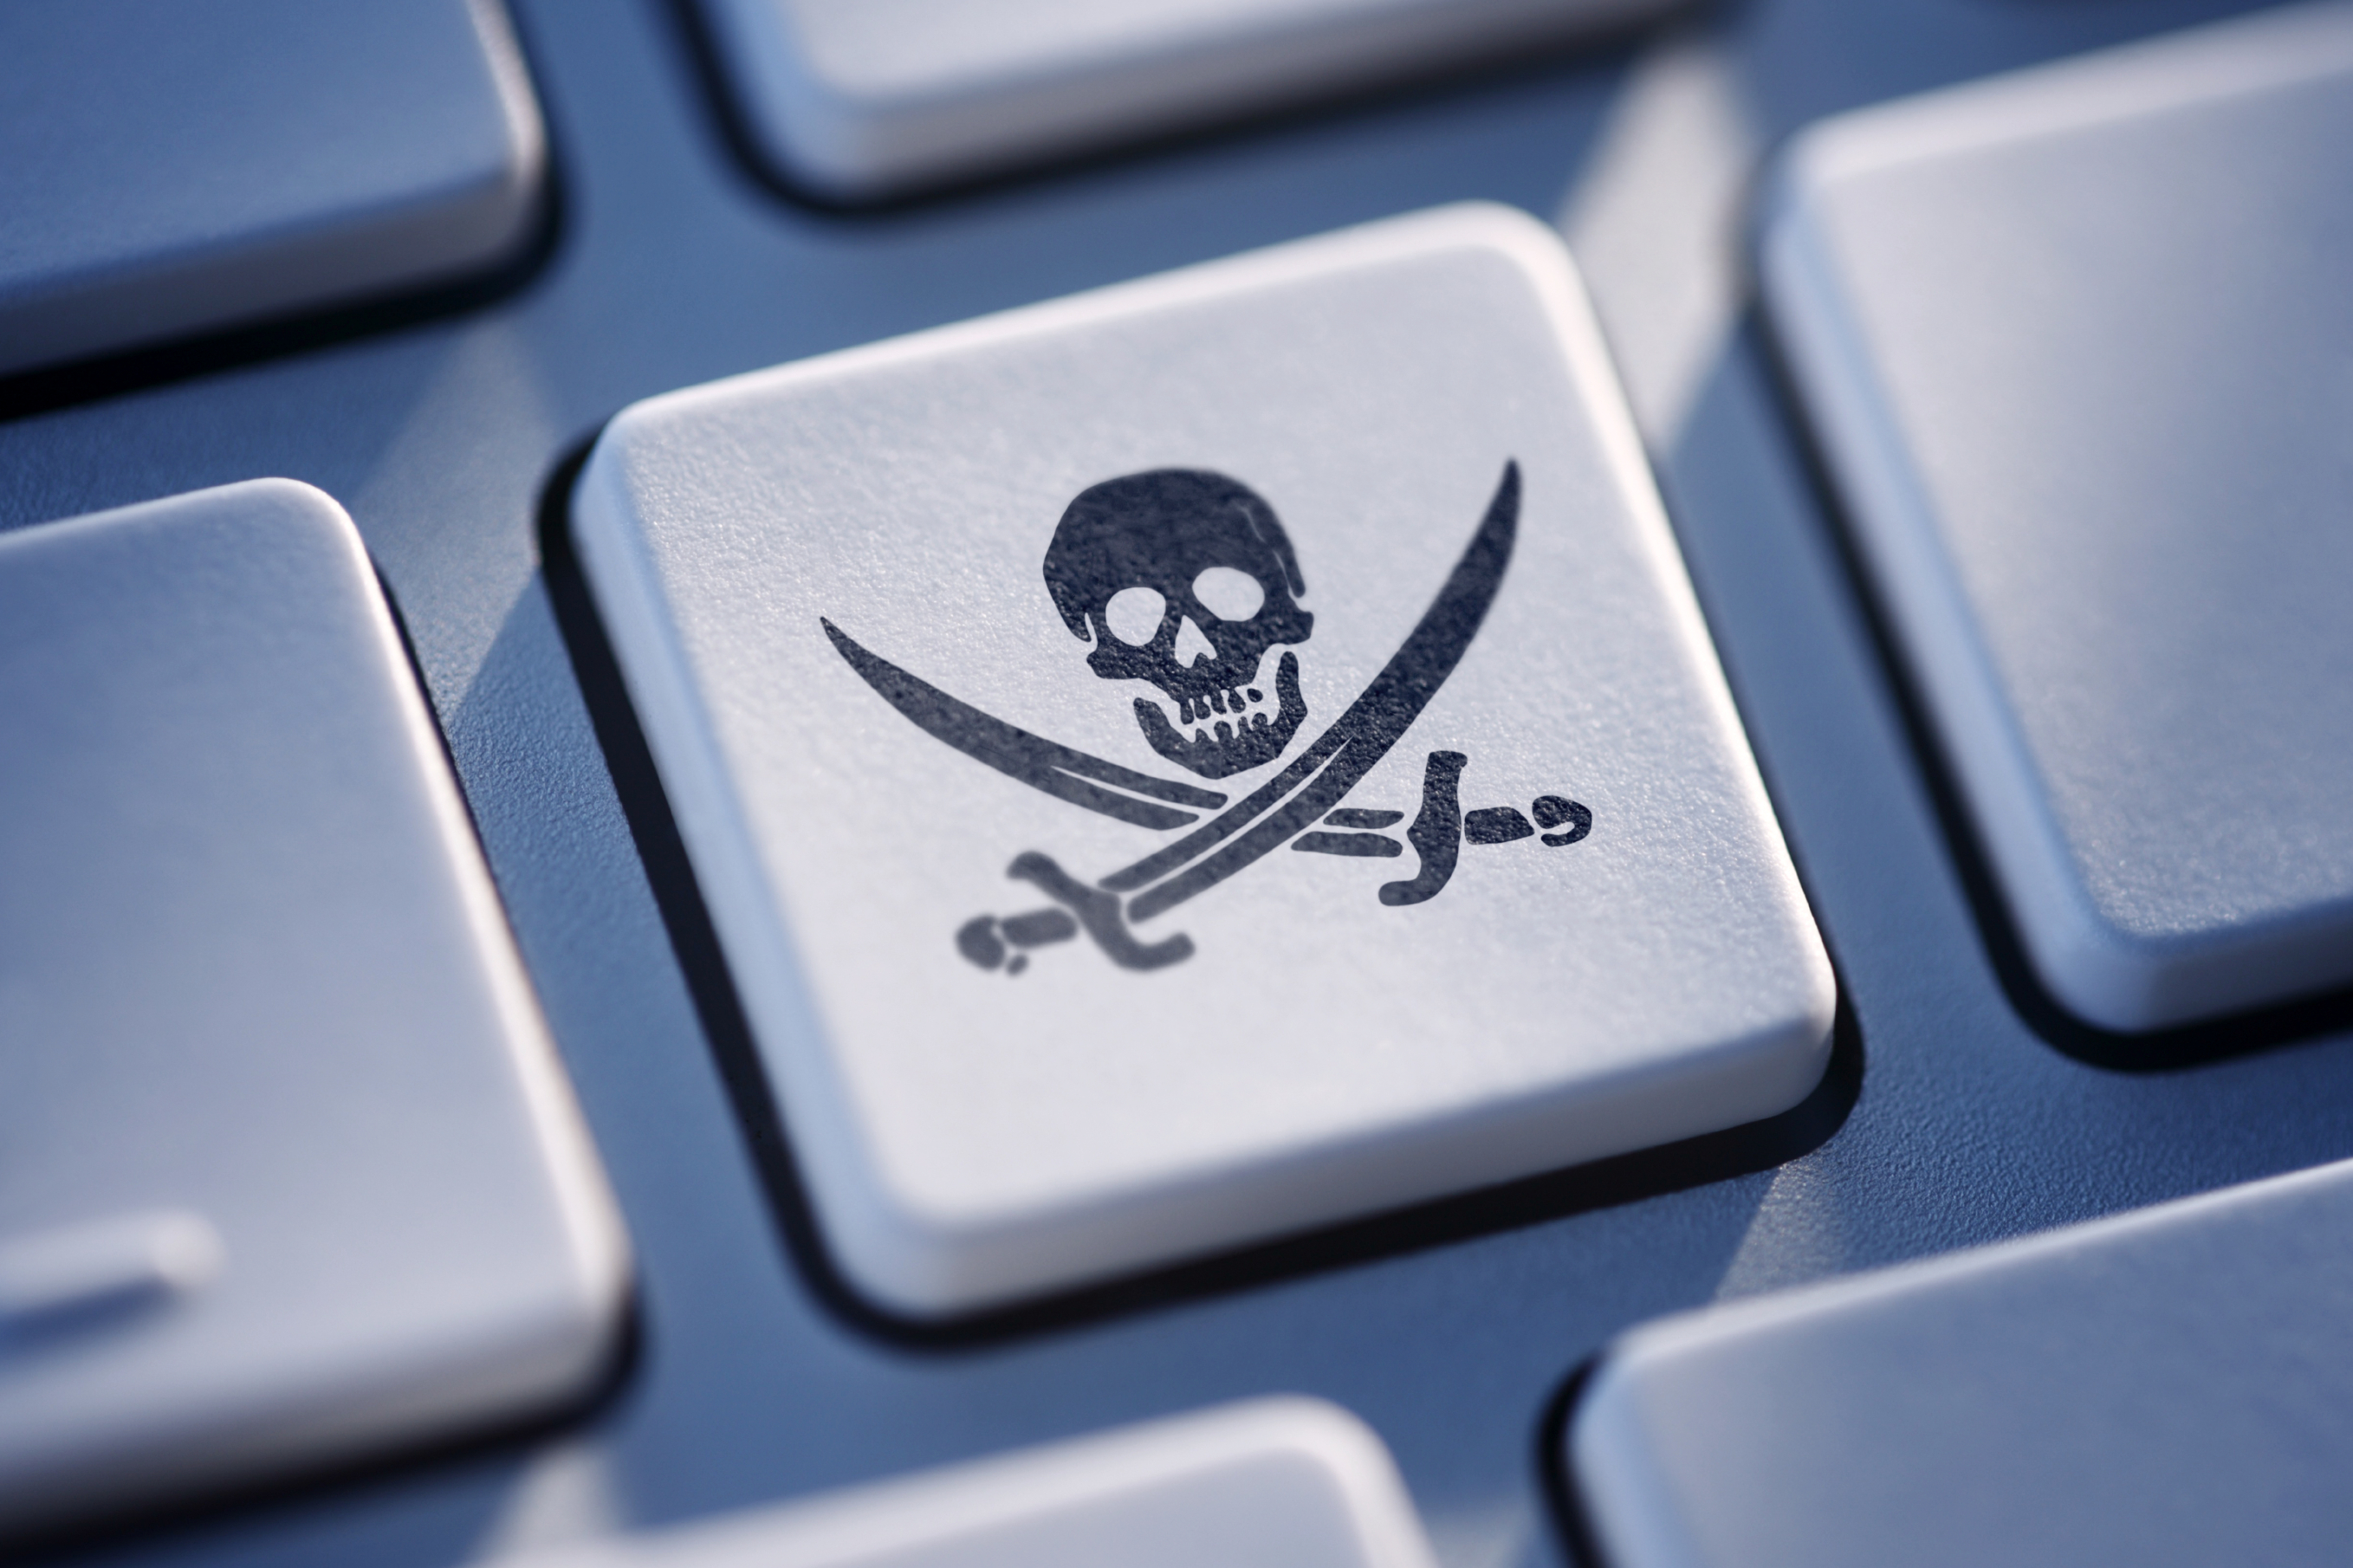 New South African Cybercrimes Bill Means Big Trouble For Piracy